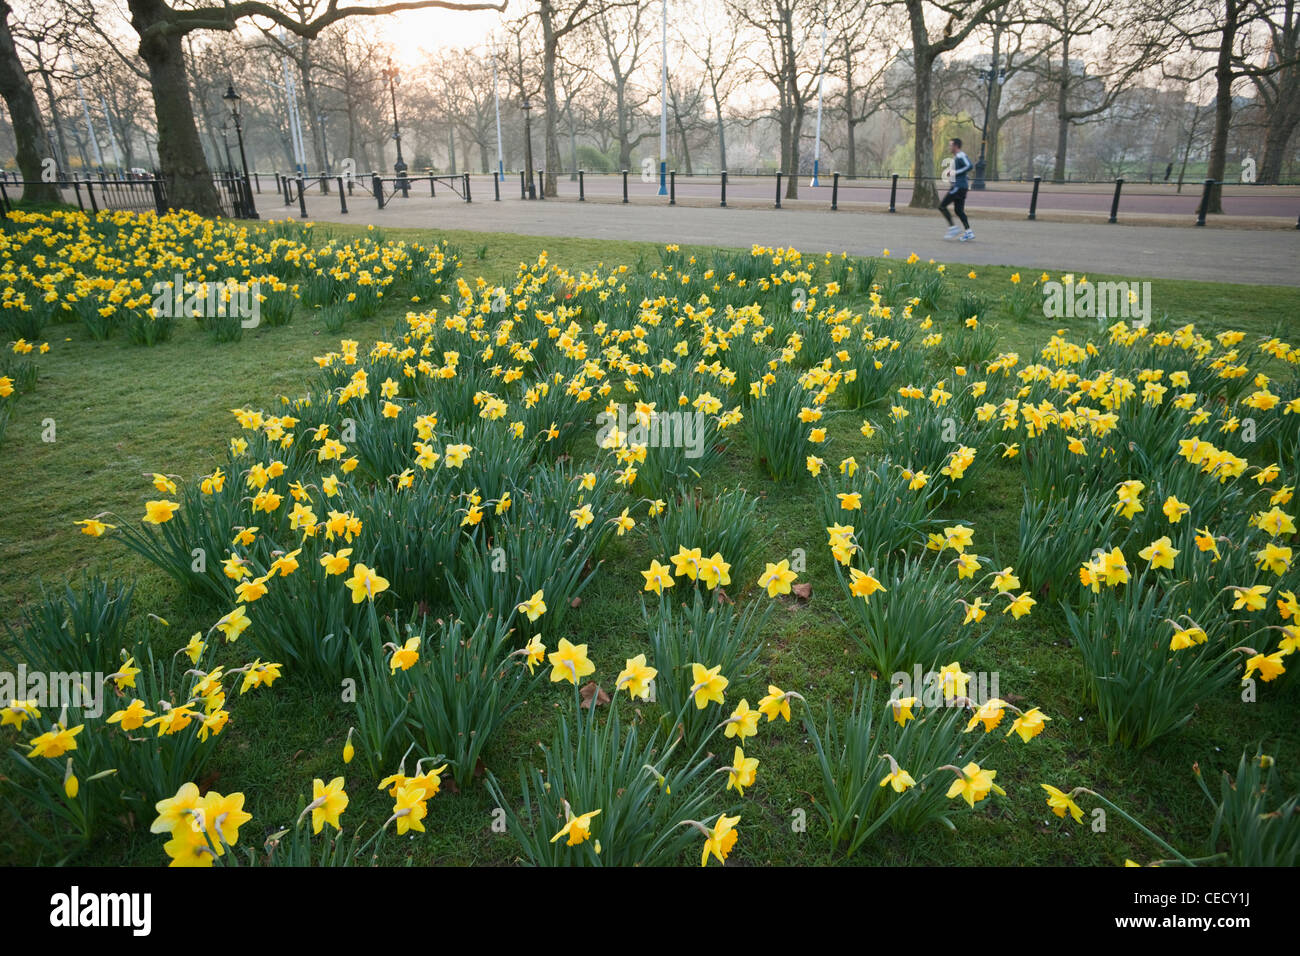 Daffodils Spring Flowers London Stock Photos Daffodils Spring